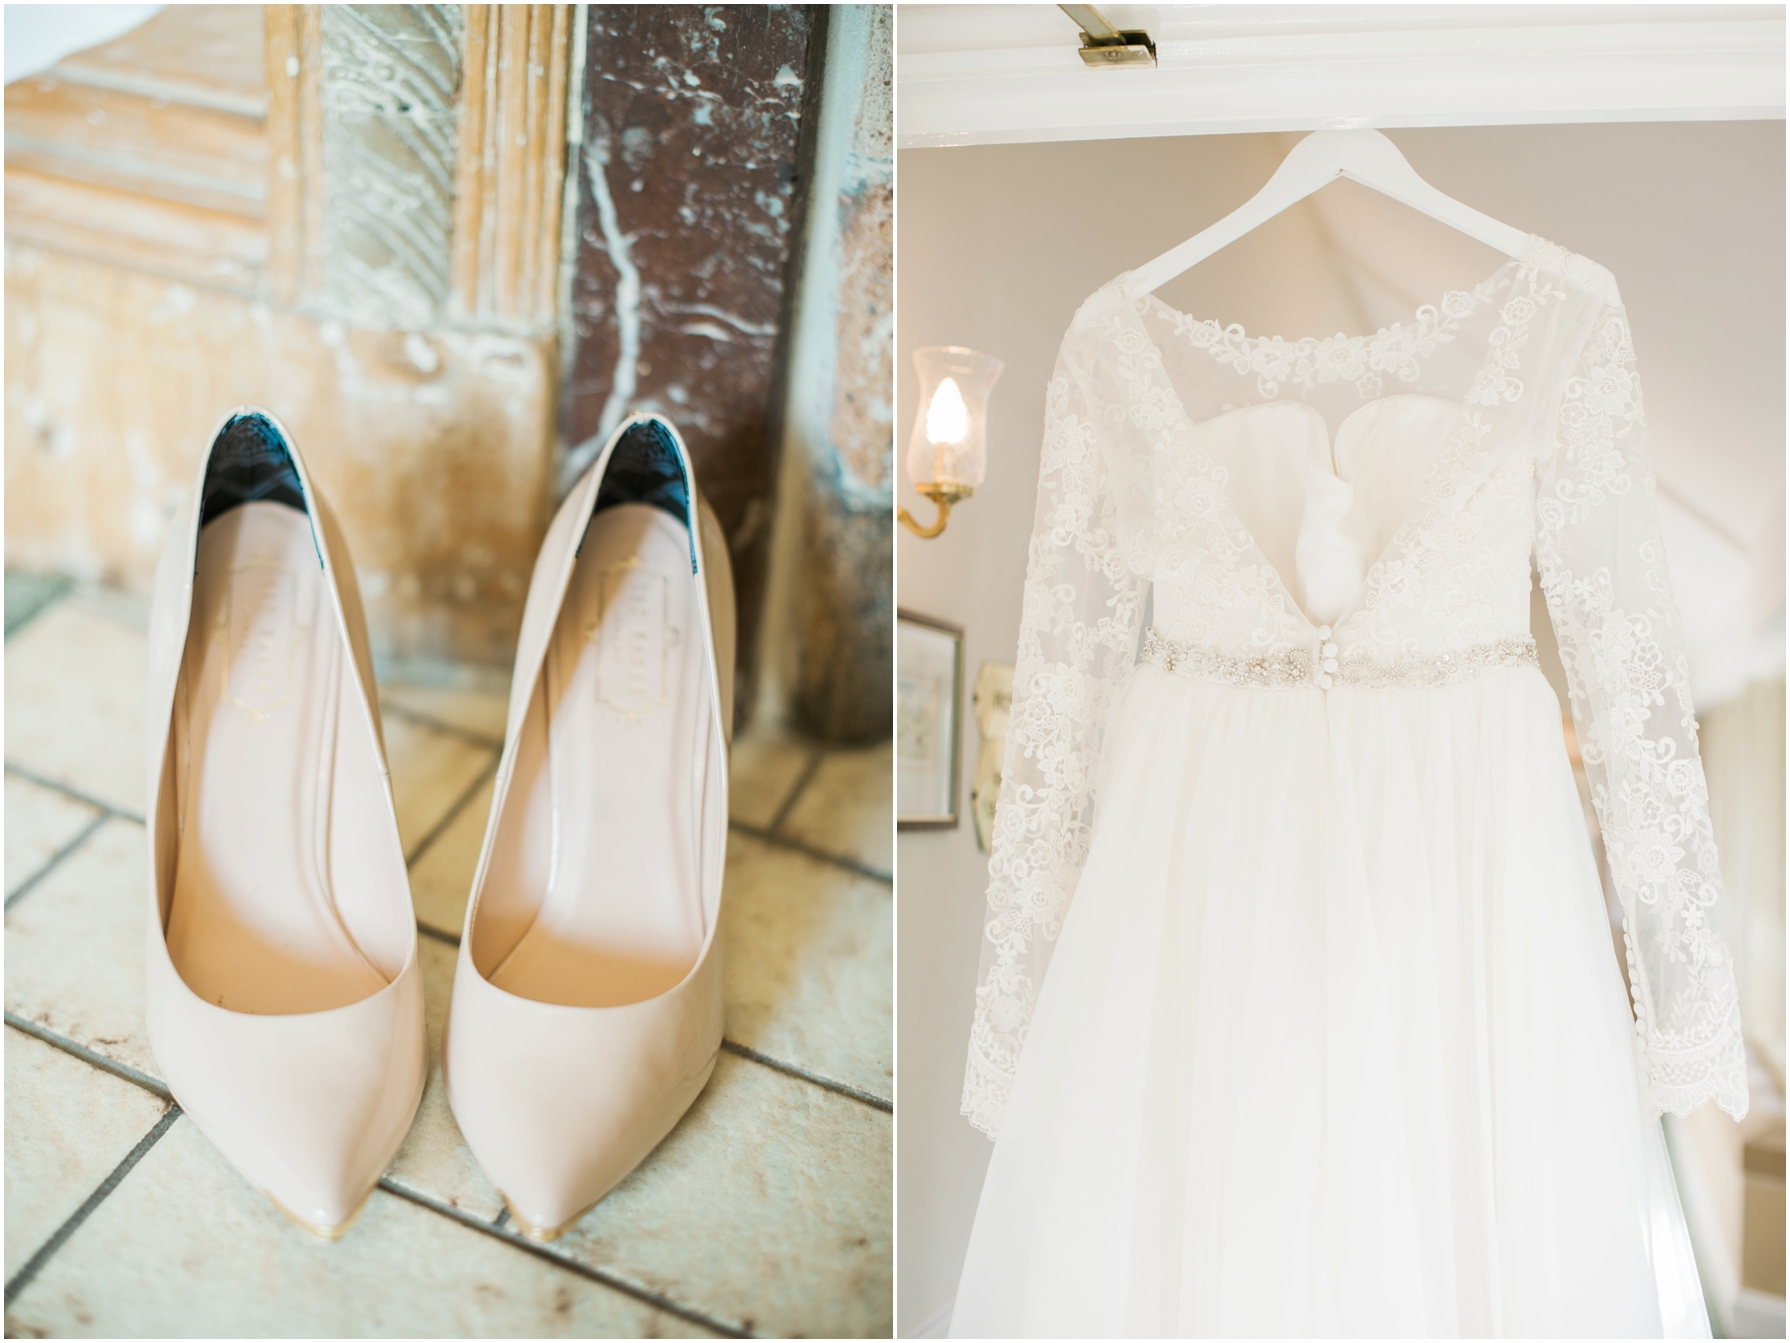 pale pink wedding shoes and a vintage wedding dress